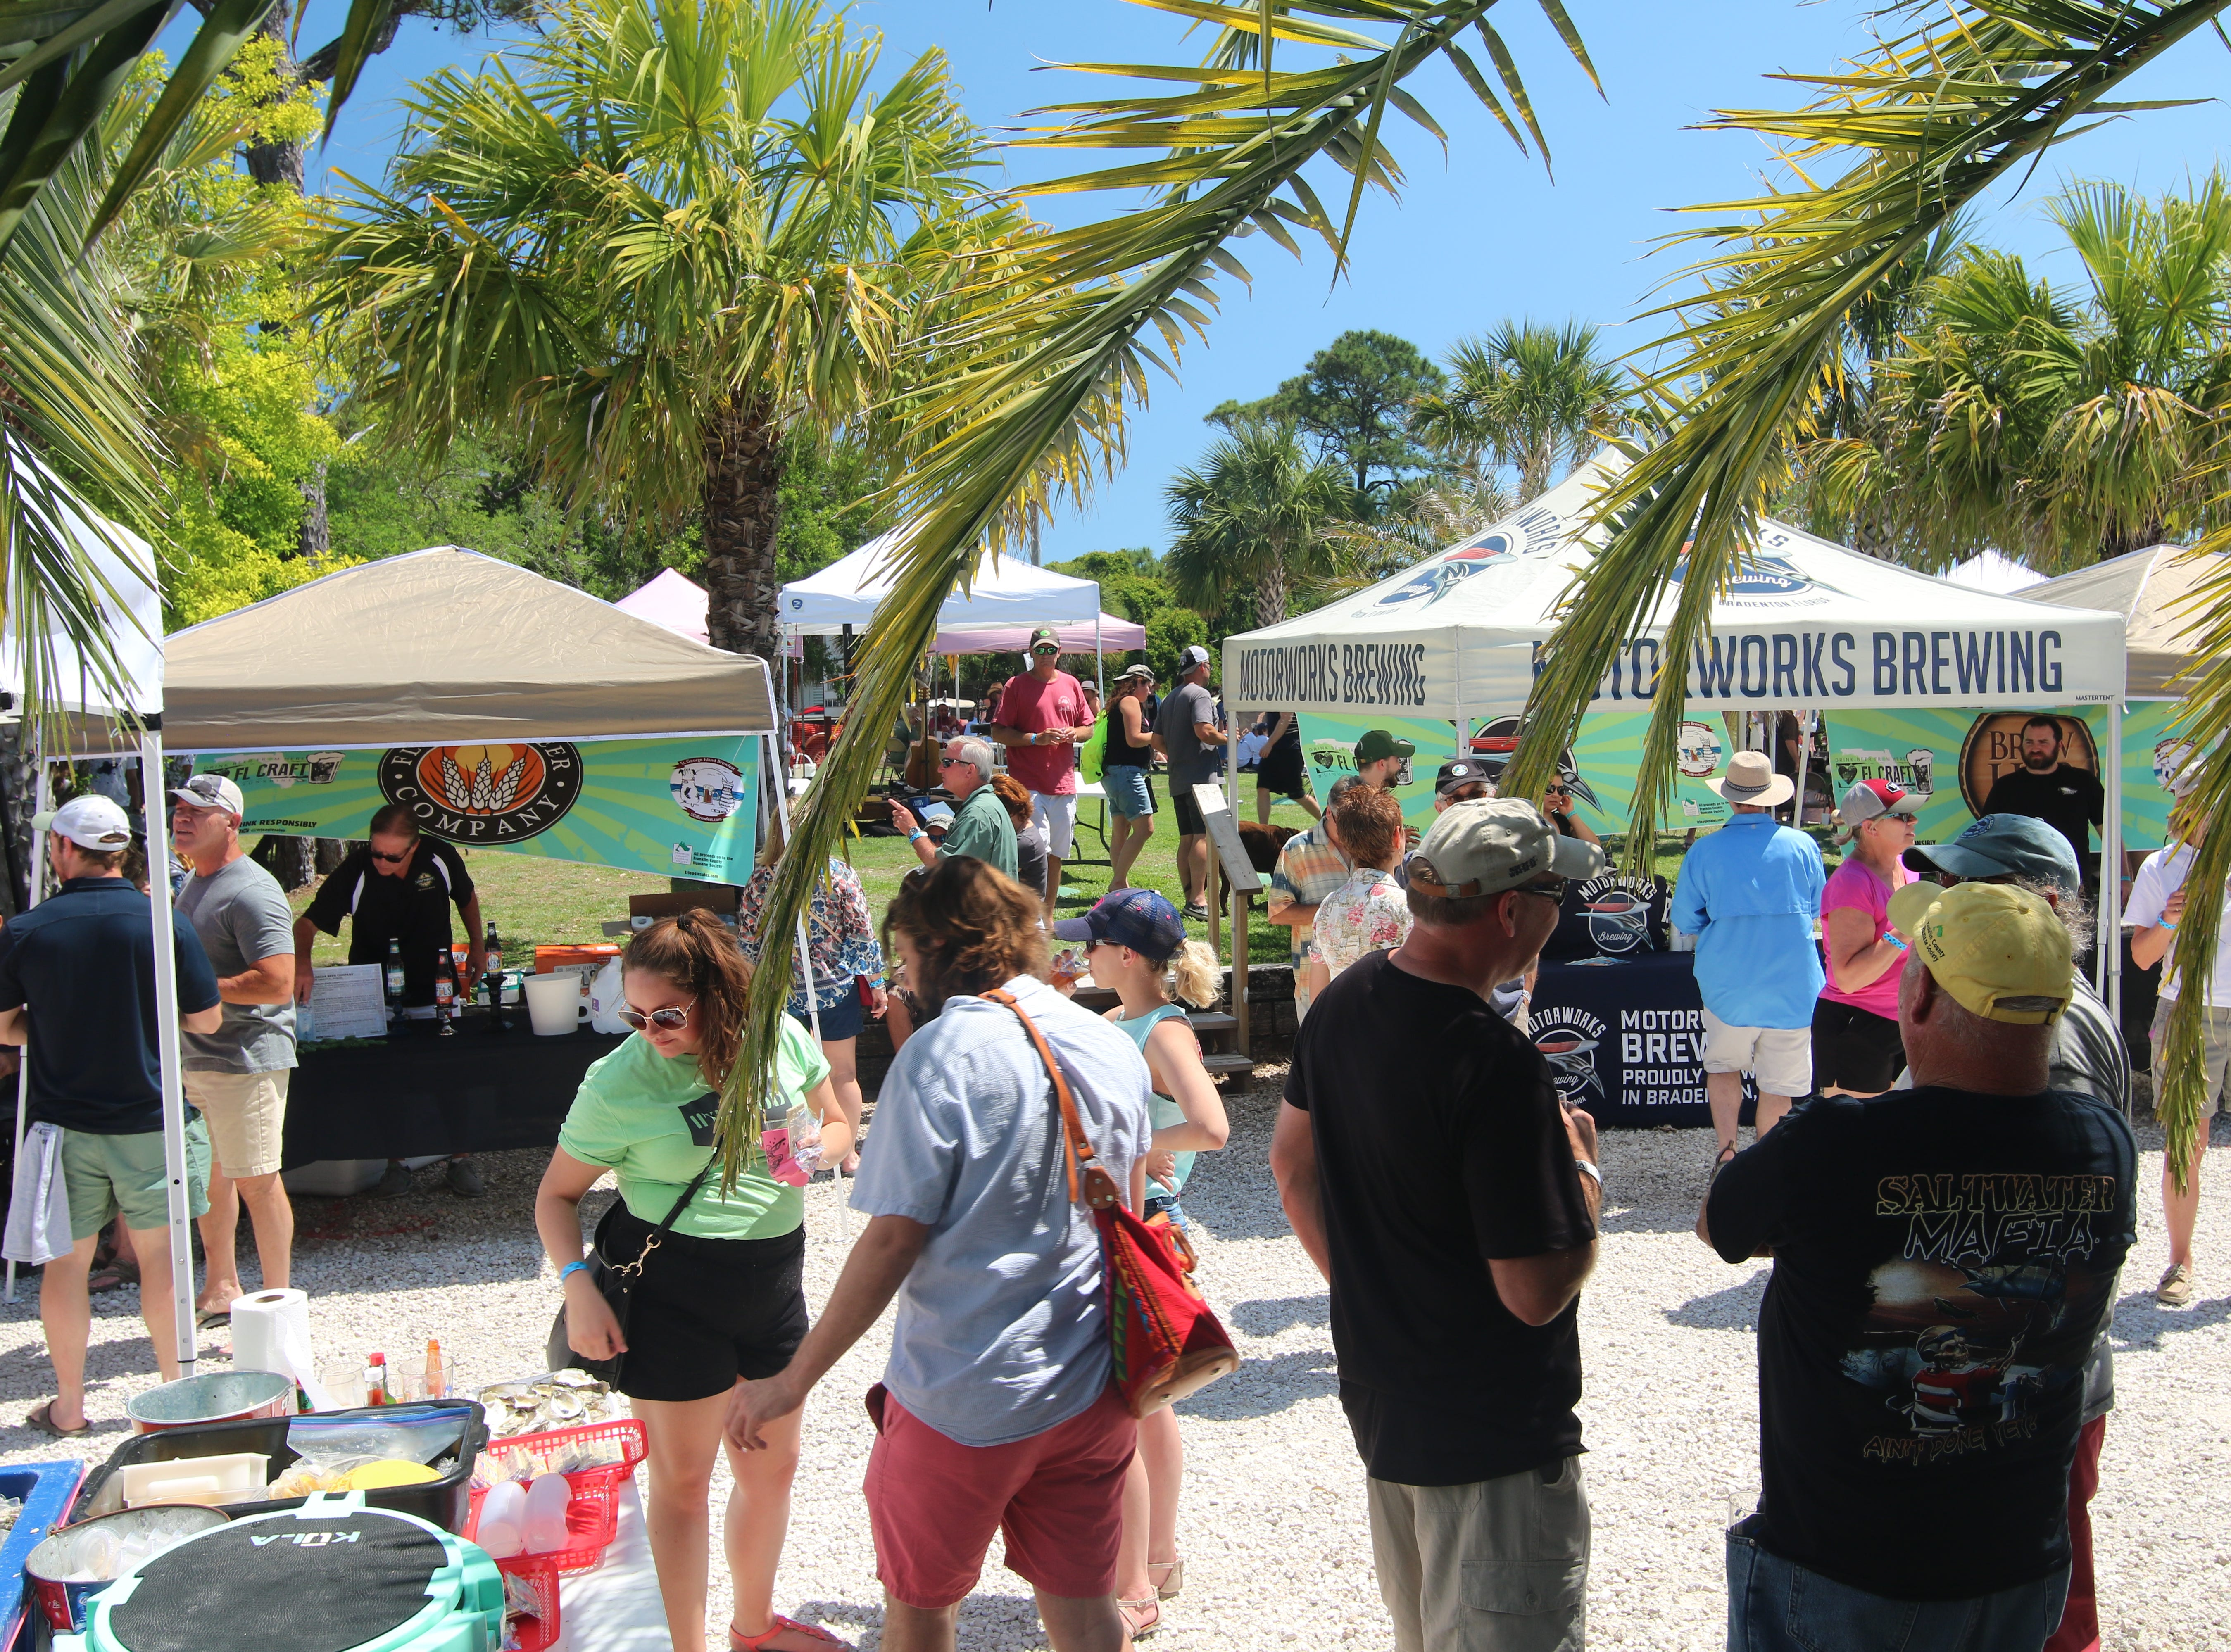 The 4th Annual St. George Island Brewfest will be held April 27 at Paddy's Raw Bar and Journey's of SGI, and will feature 40 breweries from around the Southeast, including all of Tallahassee's craft breweries and Franklin County's own Oyster City Brewing Company and Eastpoint Beer Company.